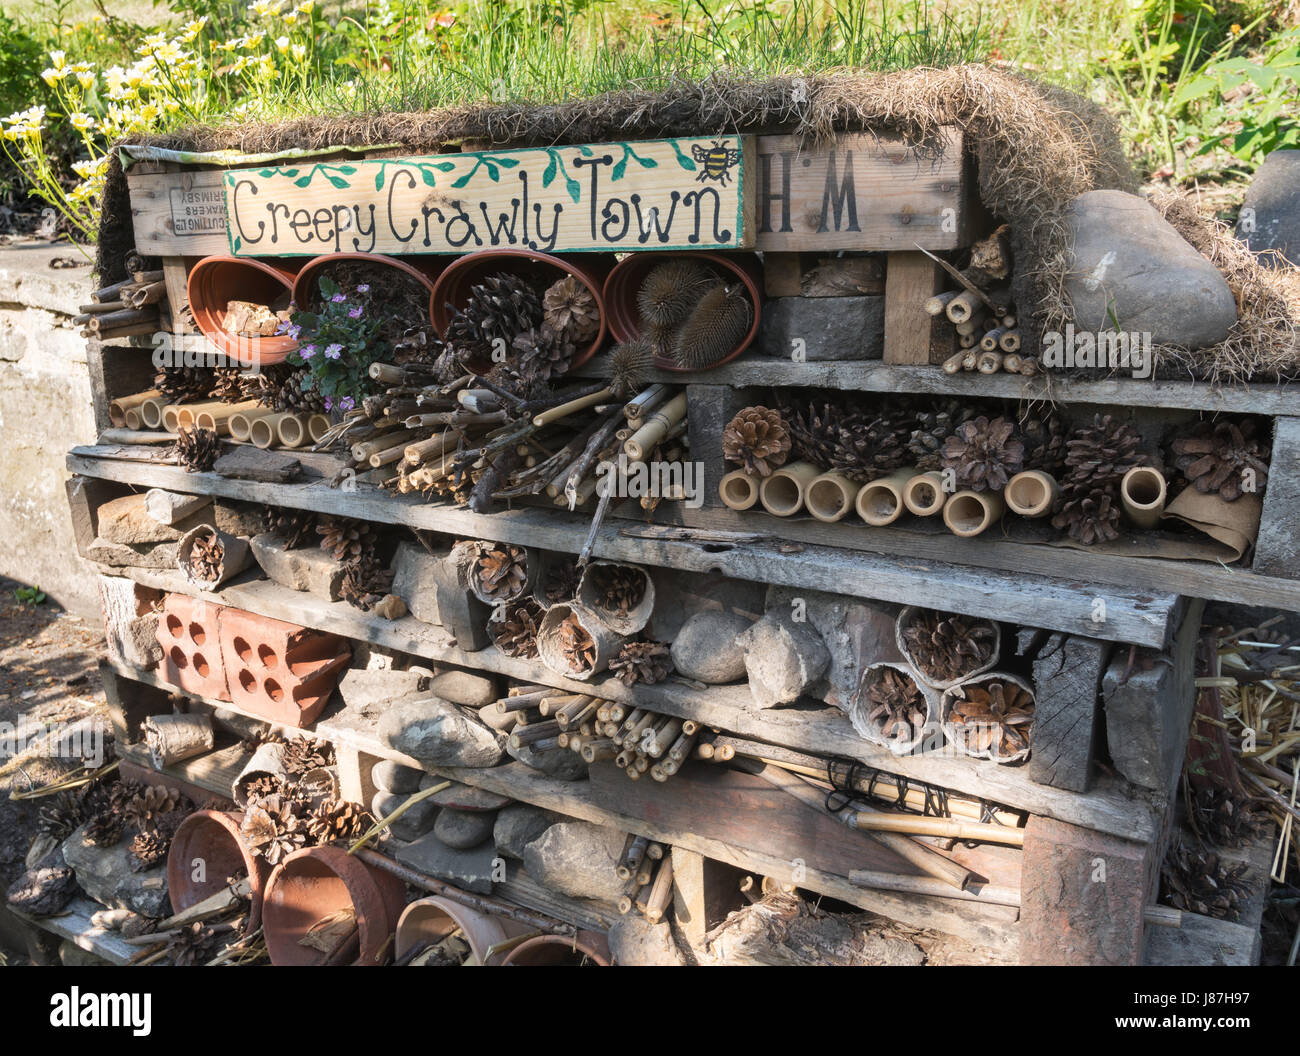 Bug Hotel, or Creepy Crawly Town, Wharton Park, Durham, England, UK Stock Photo